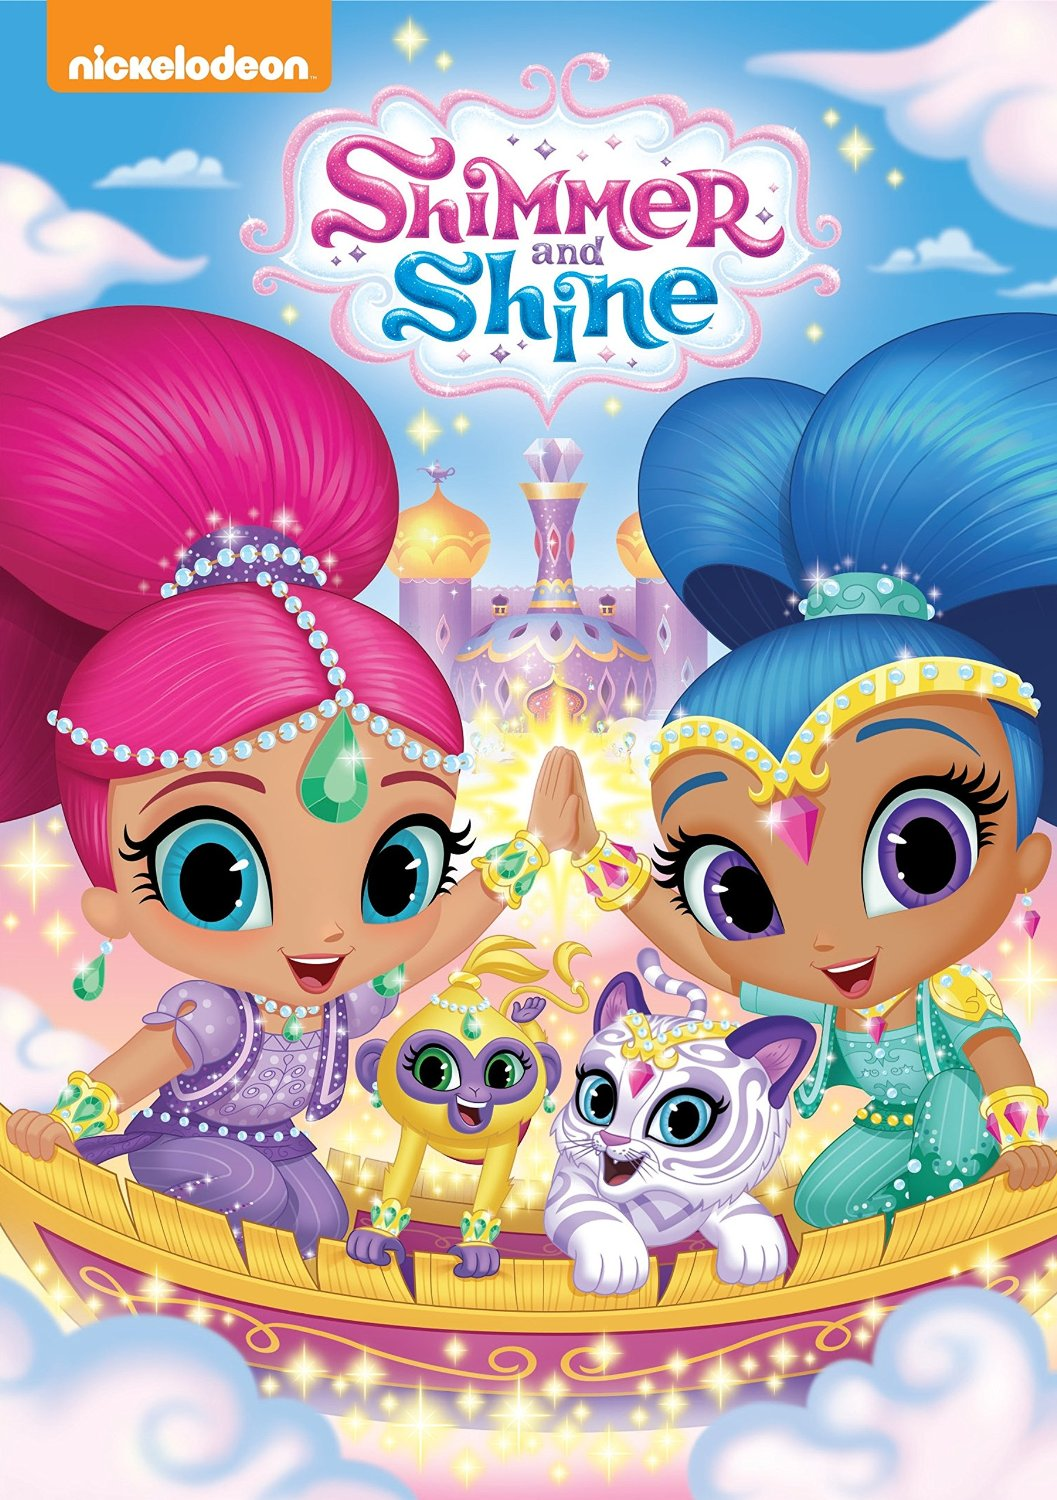 Nickelodeon's Shimmer & Shine on DVD today! - Lovebugs and Postcards